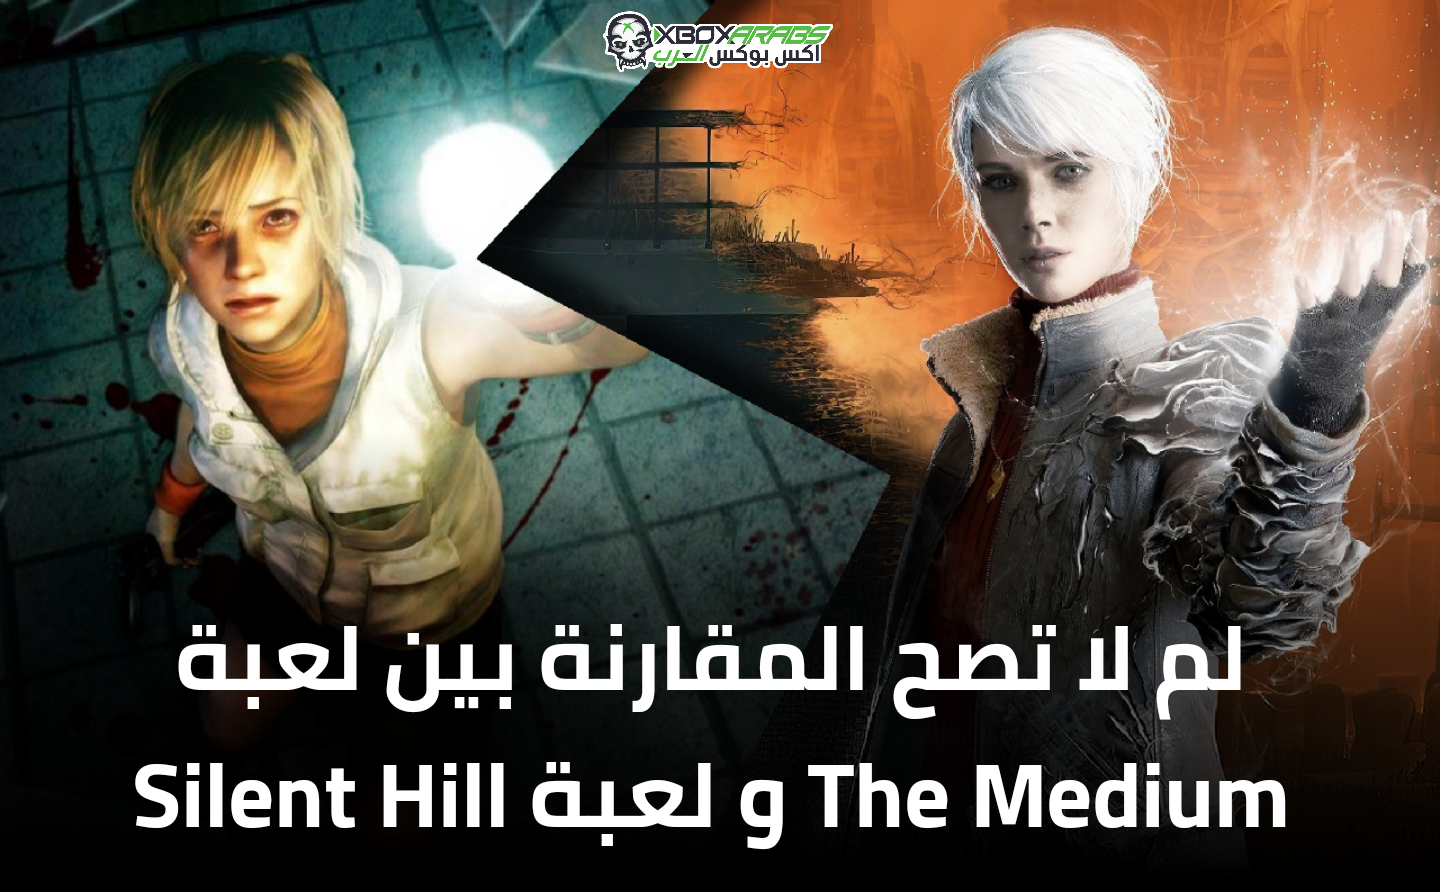 The Medium vs Silent Hill